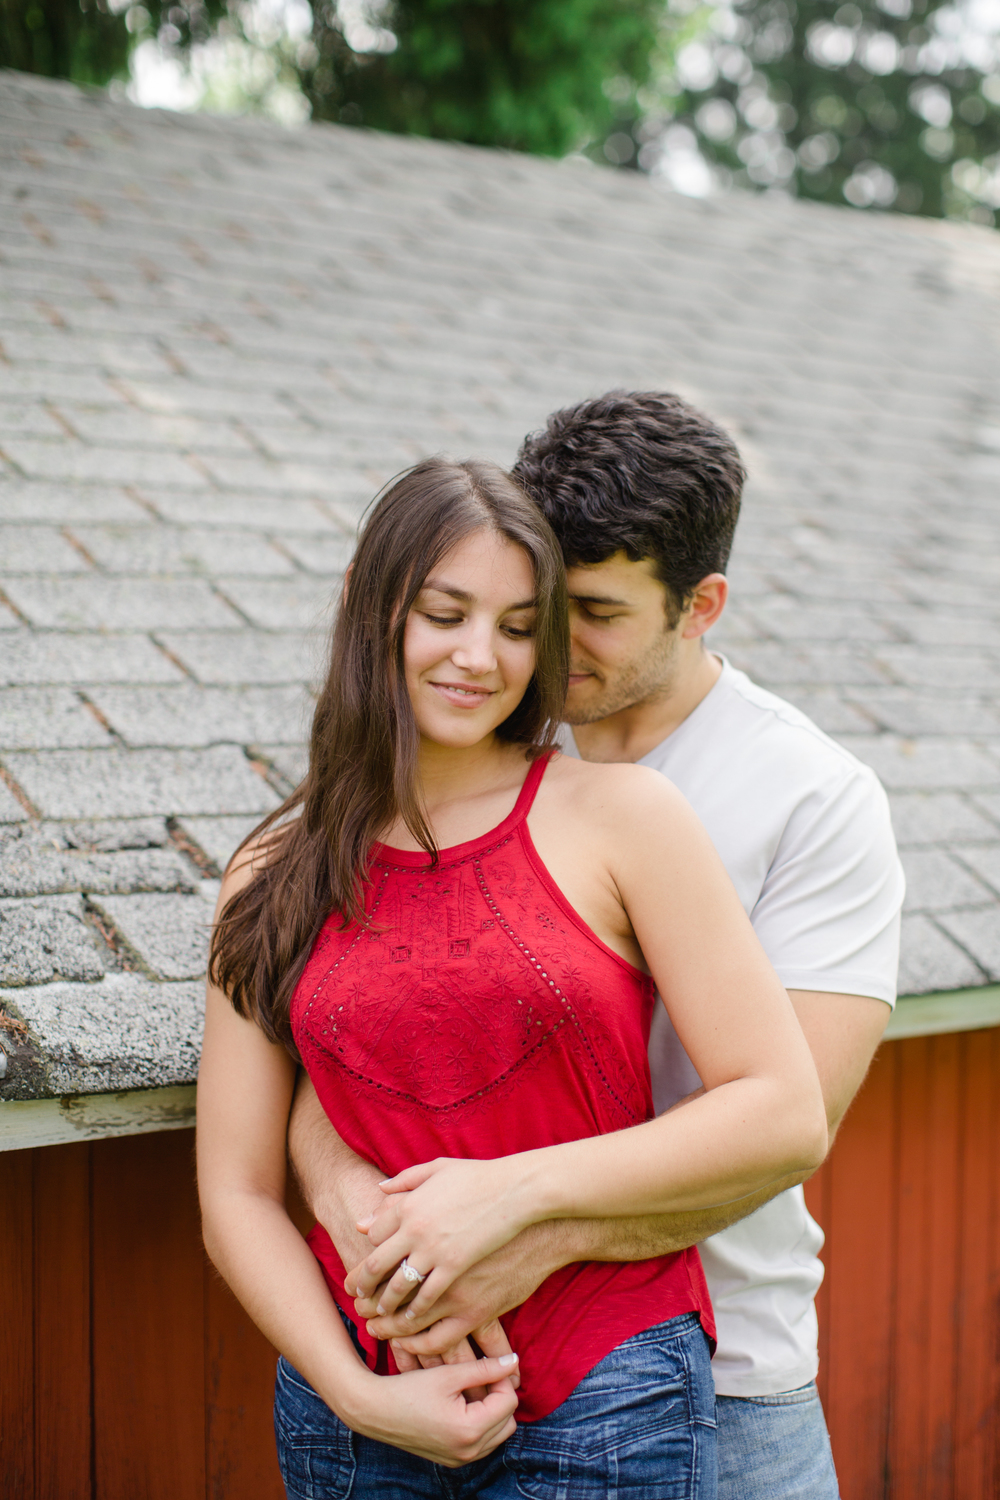 Scranton PA Rustic Romantic Engagement Session Photographers Jordan DeNike_JDP-22.jpg